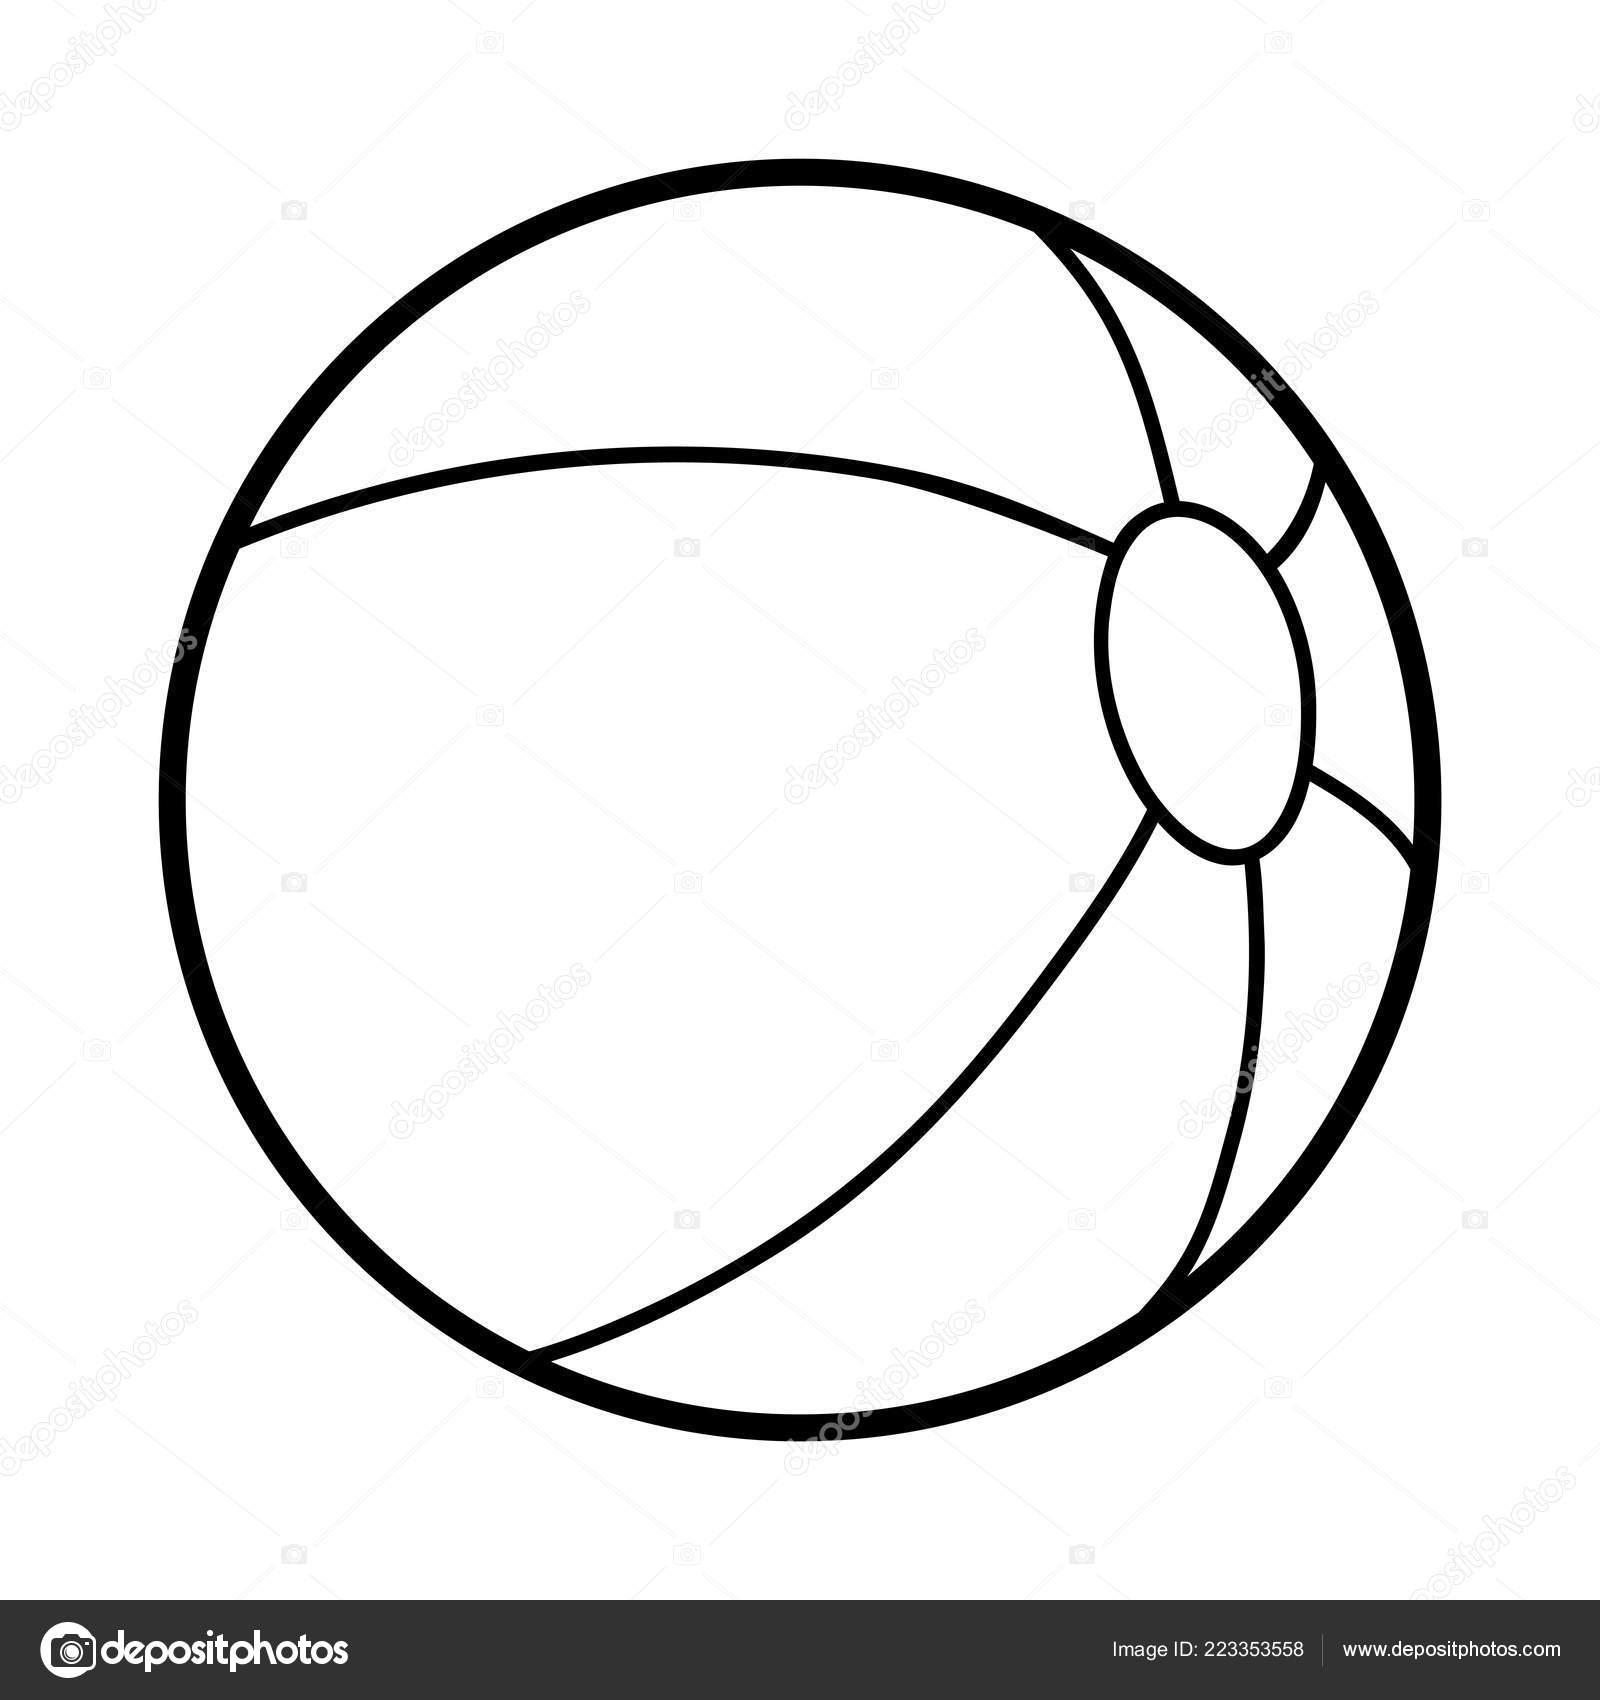 image regarding Beach Ball Printable named Images: printable seaside ball coloring site Coloring Ebook